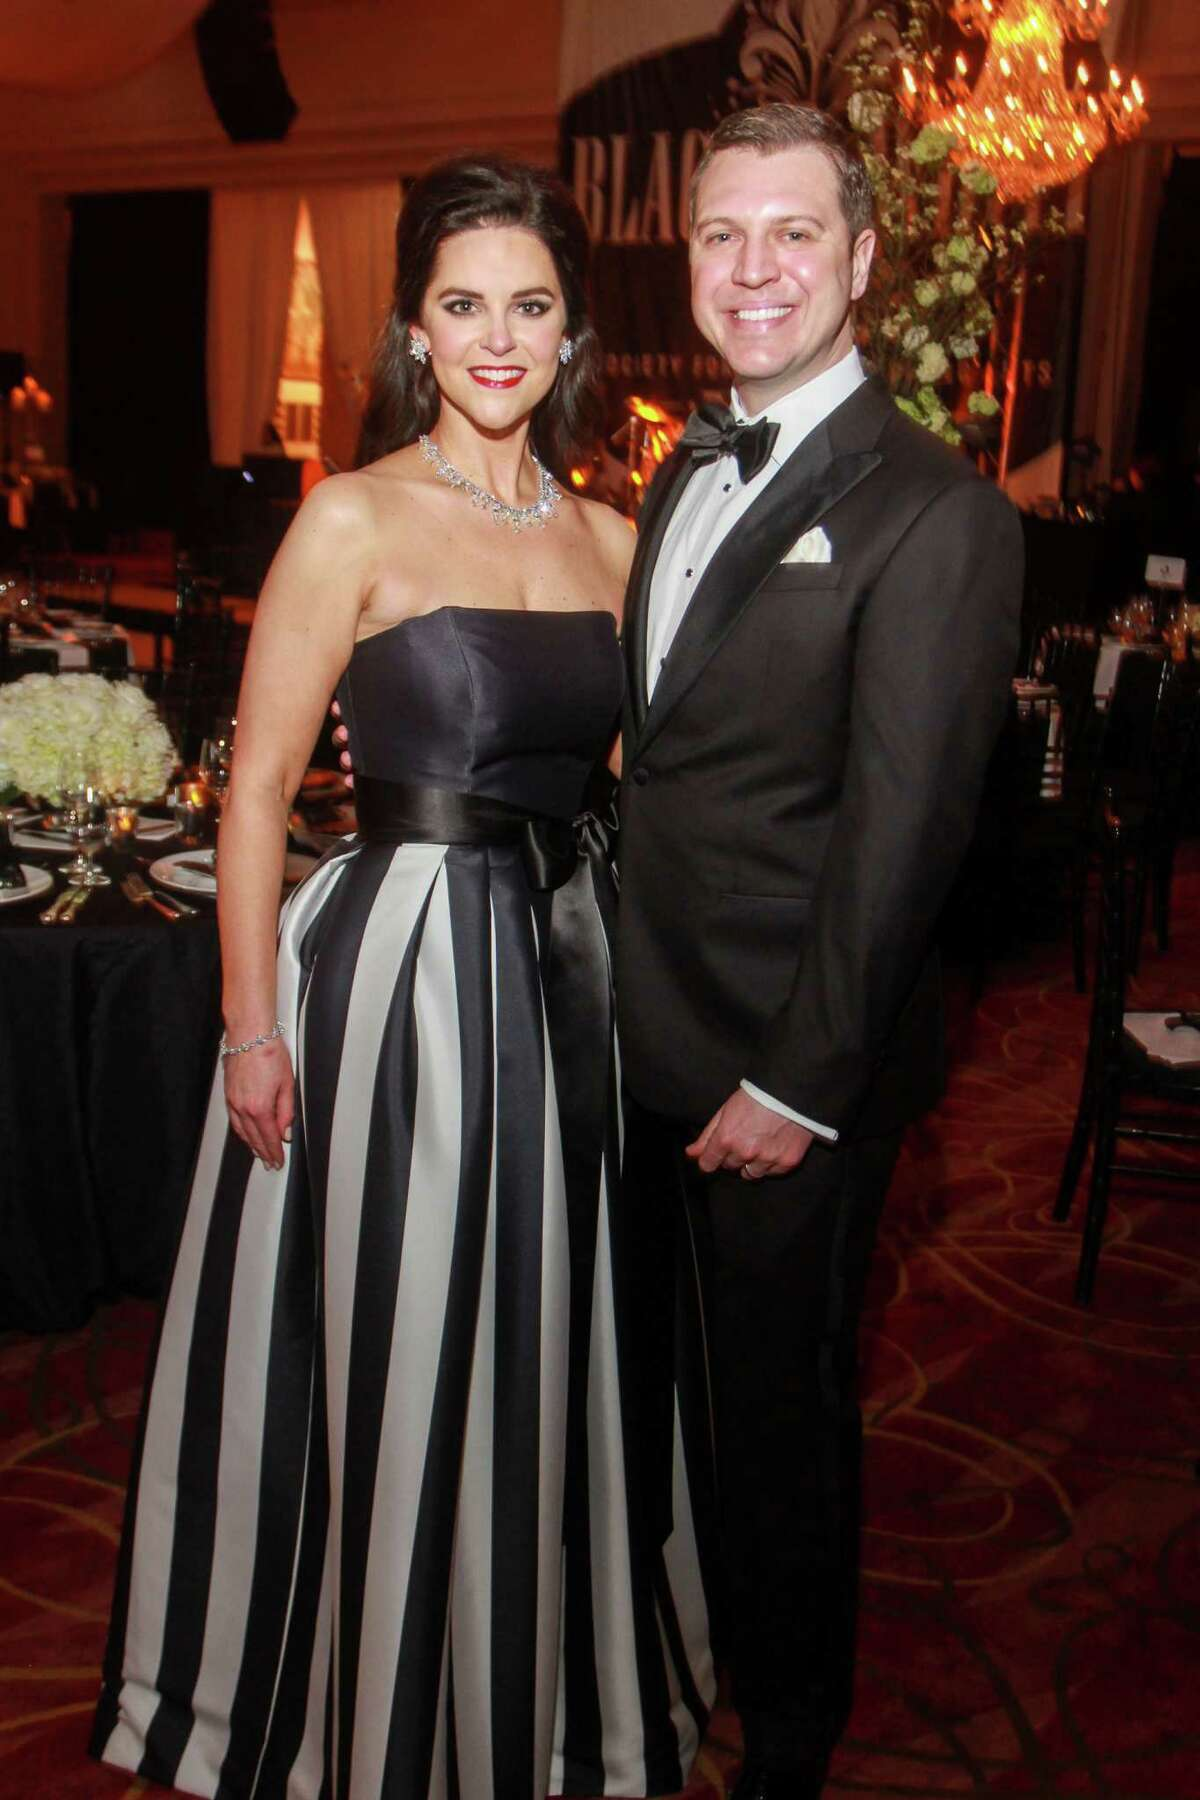 Ann and Jonathan Ayre at the Society for the Performing Arts Black & White Ball.